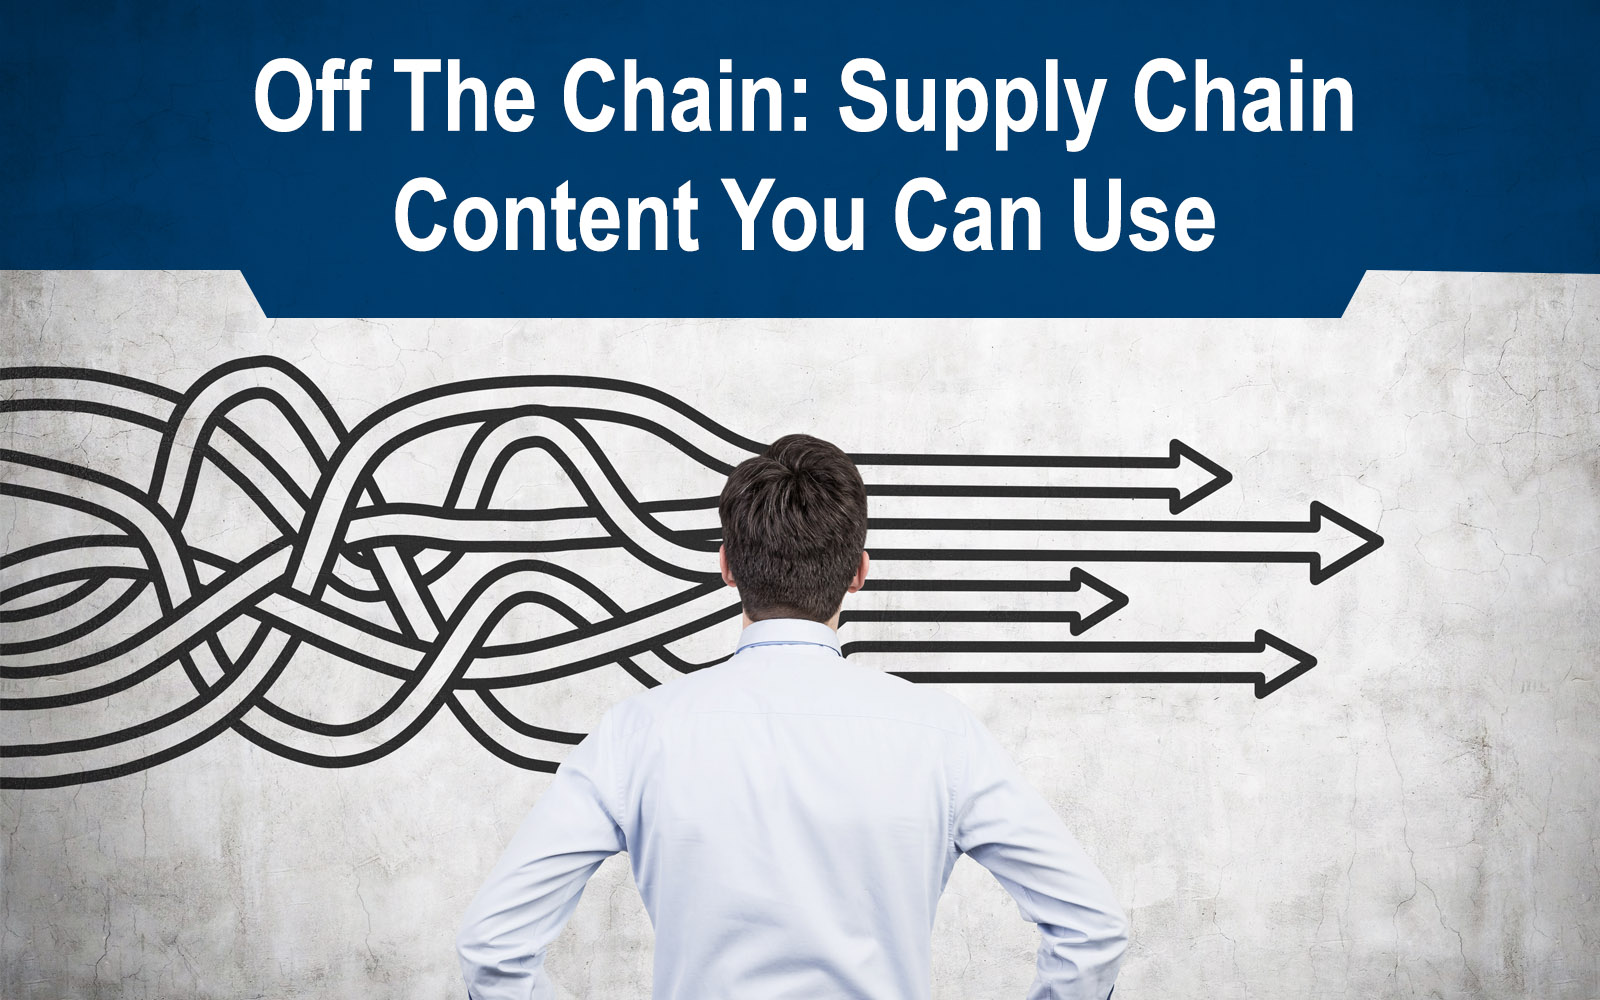 Off the Chain: Supply Chain Content You Can Use